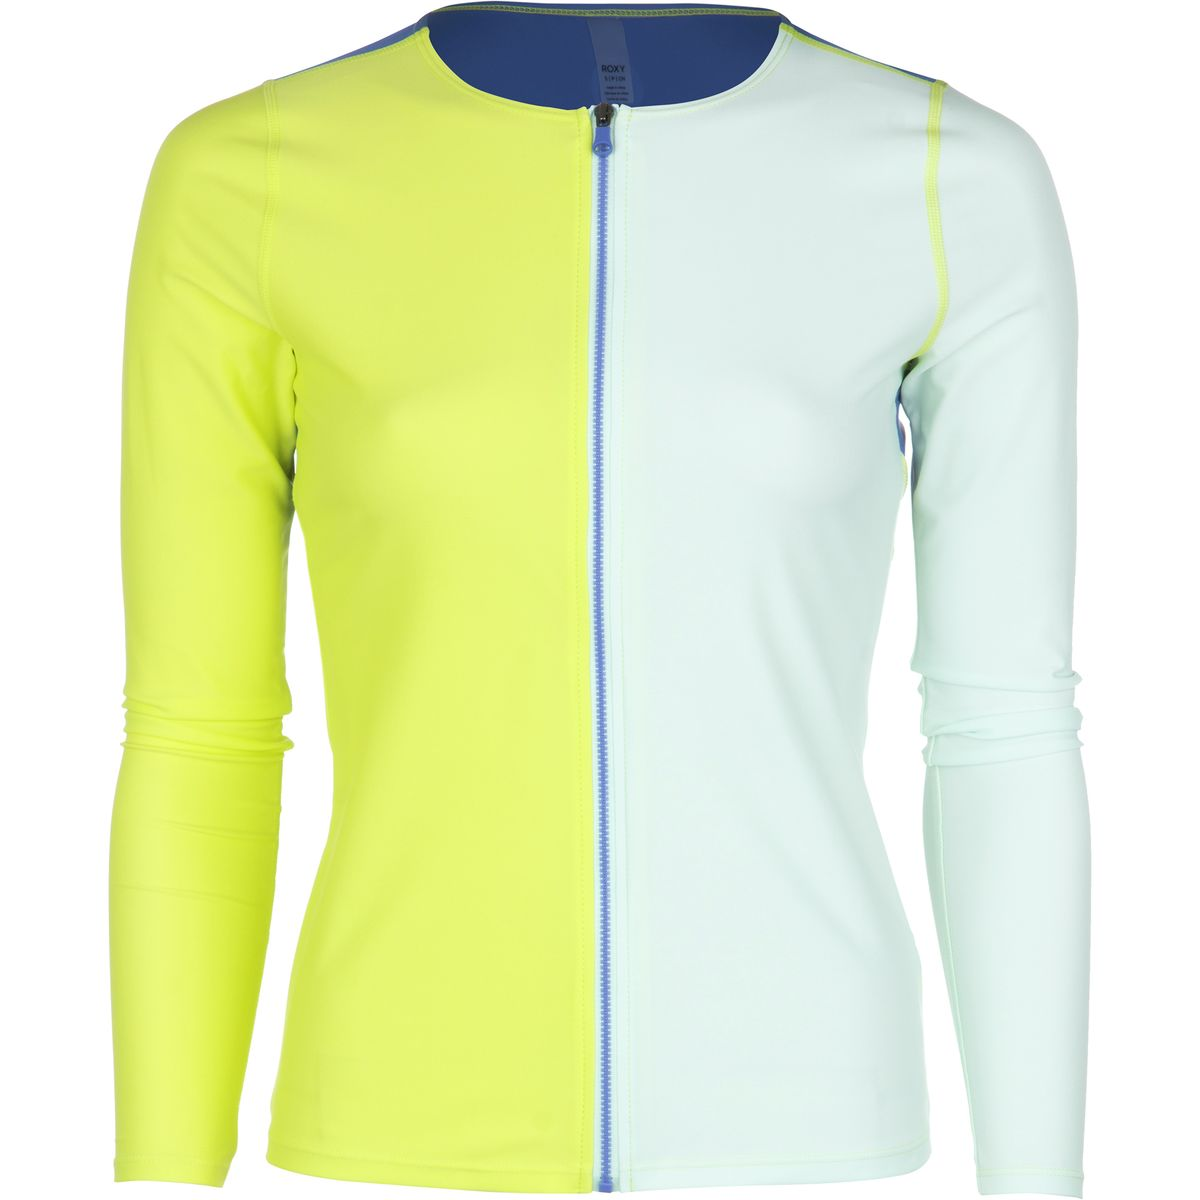 Roxy Zip It Rashguard